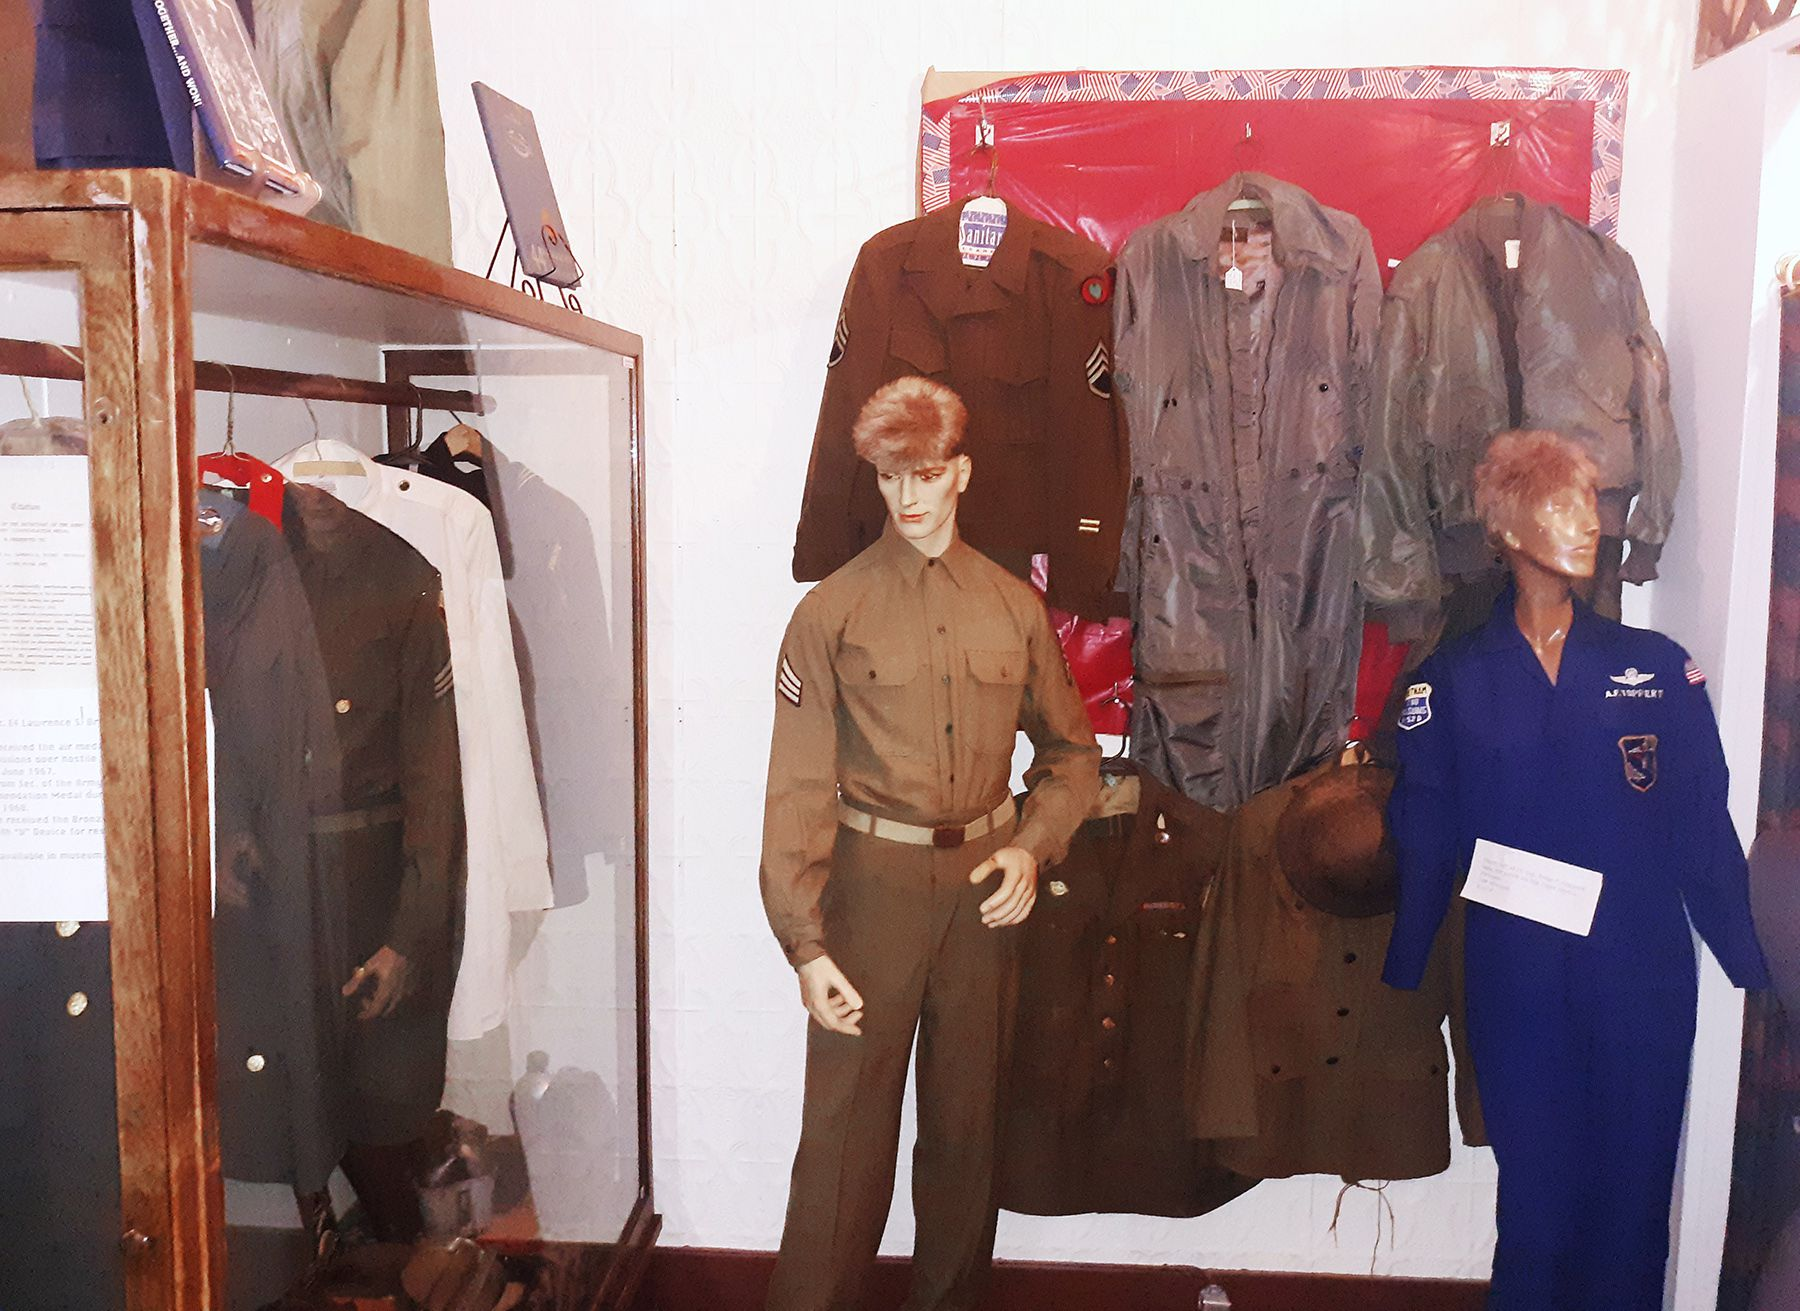 Local militaria is among the memorabilia on display at the Prophetstown Area Historical Society.